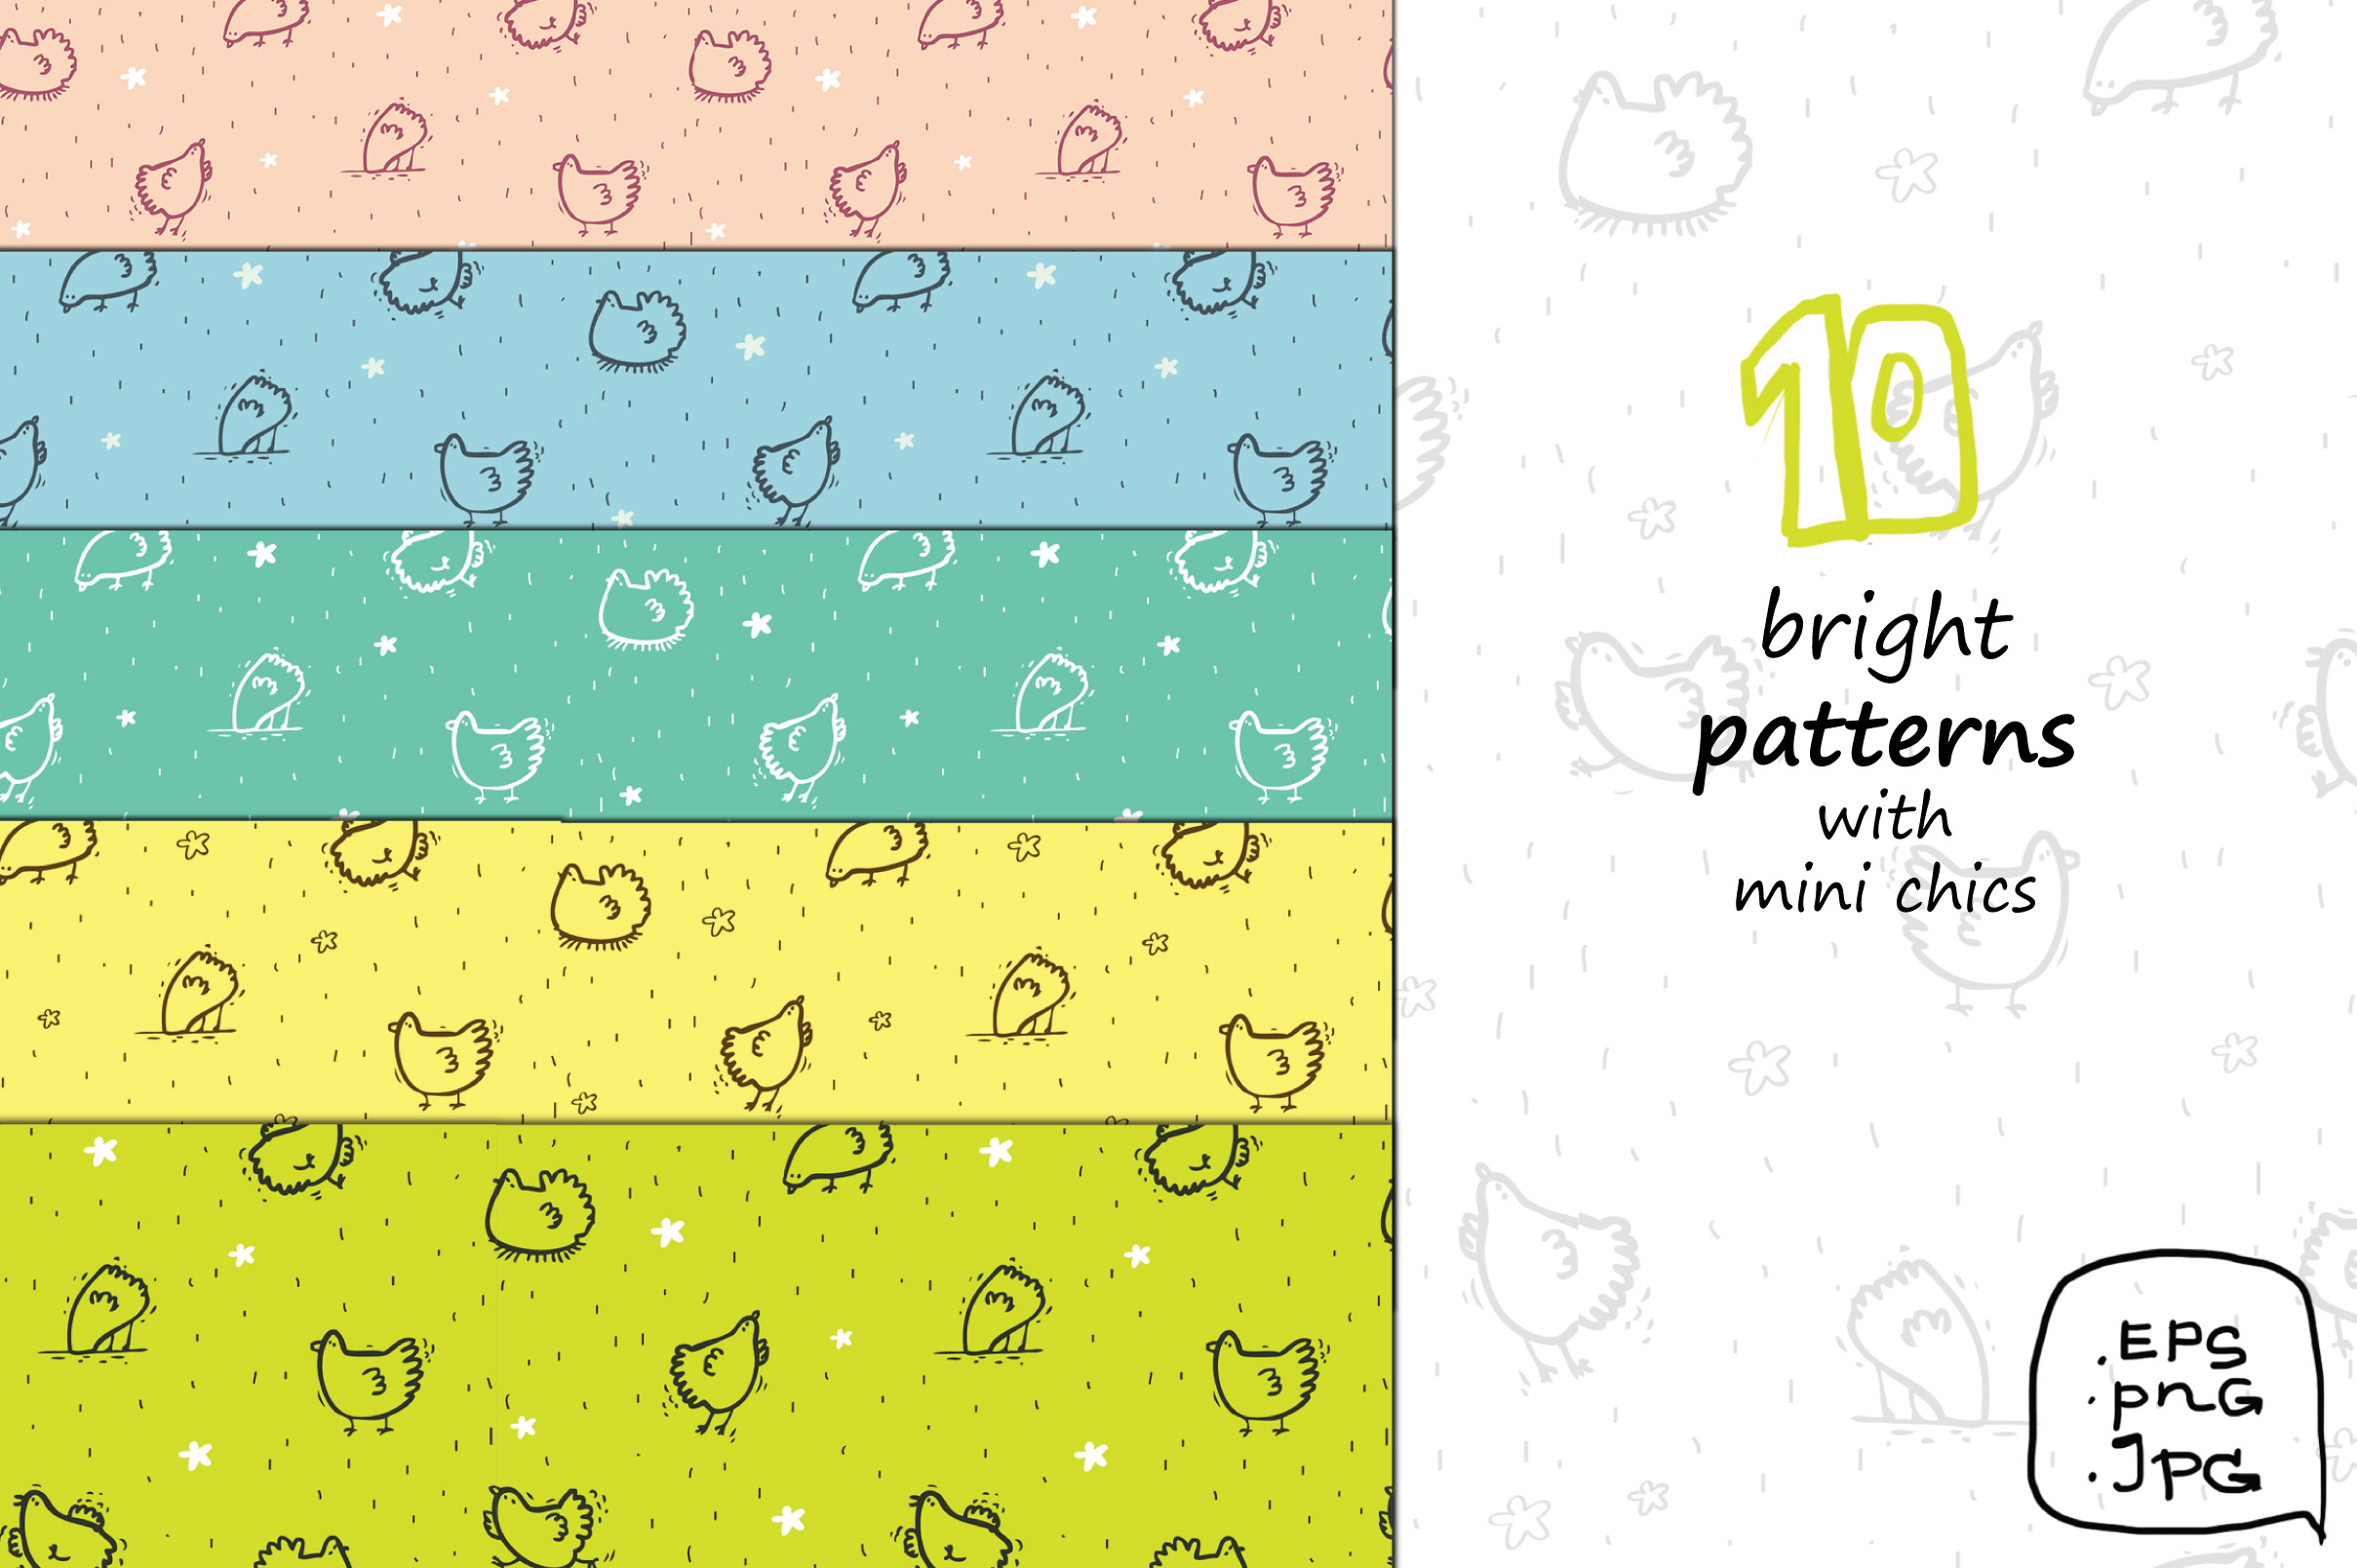 Wise Hens - 32 patterns, prints example image 2